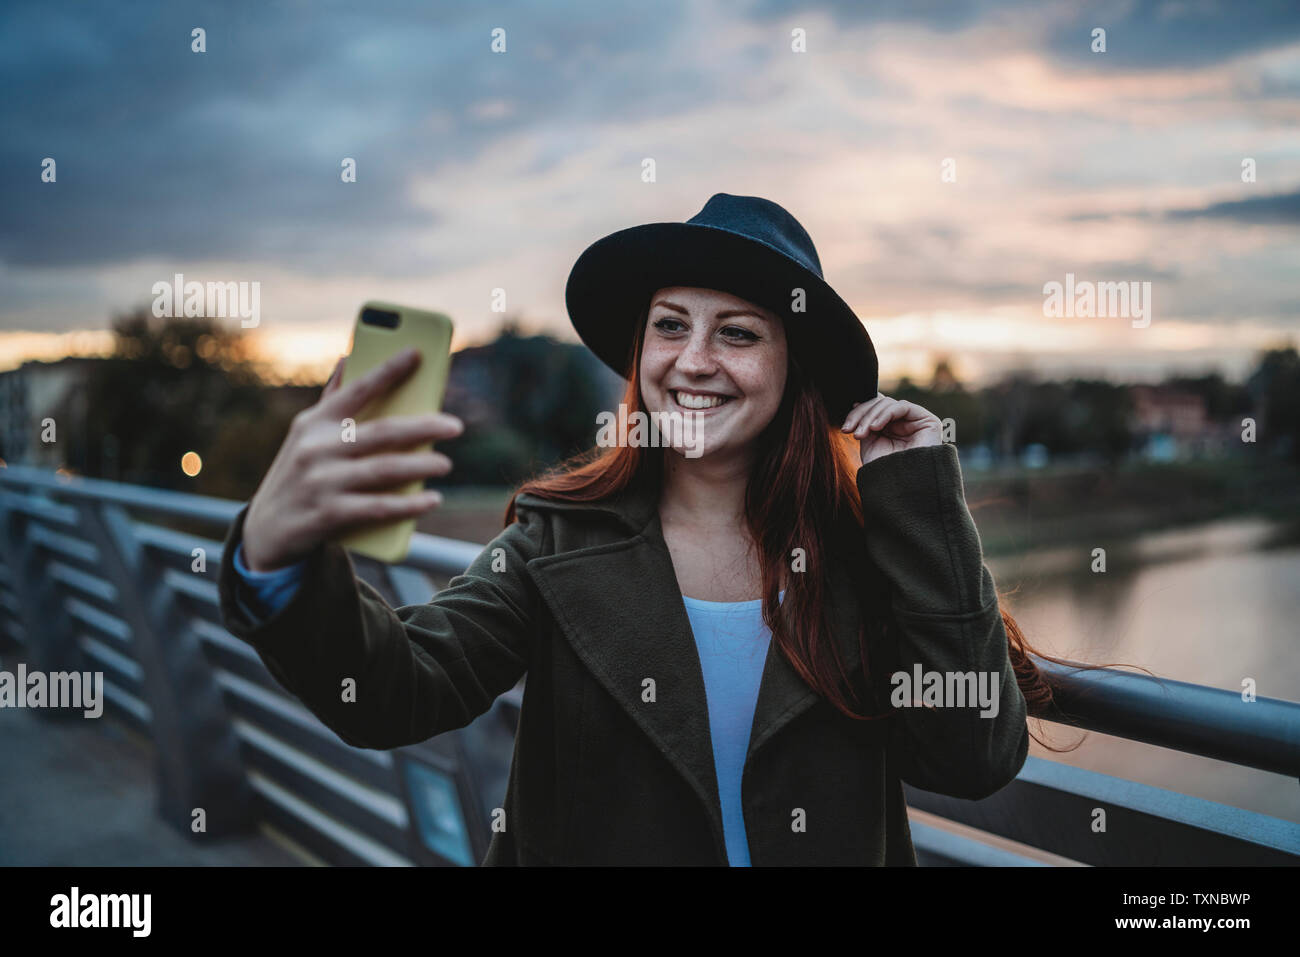 Young woman with long red hair on footbridge taking smartphone selfie at dusk, Florence, Tuscany, Italy Stock Photo